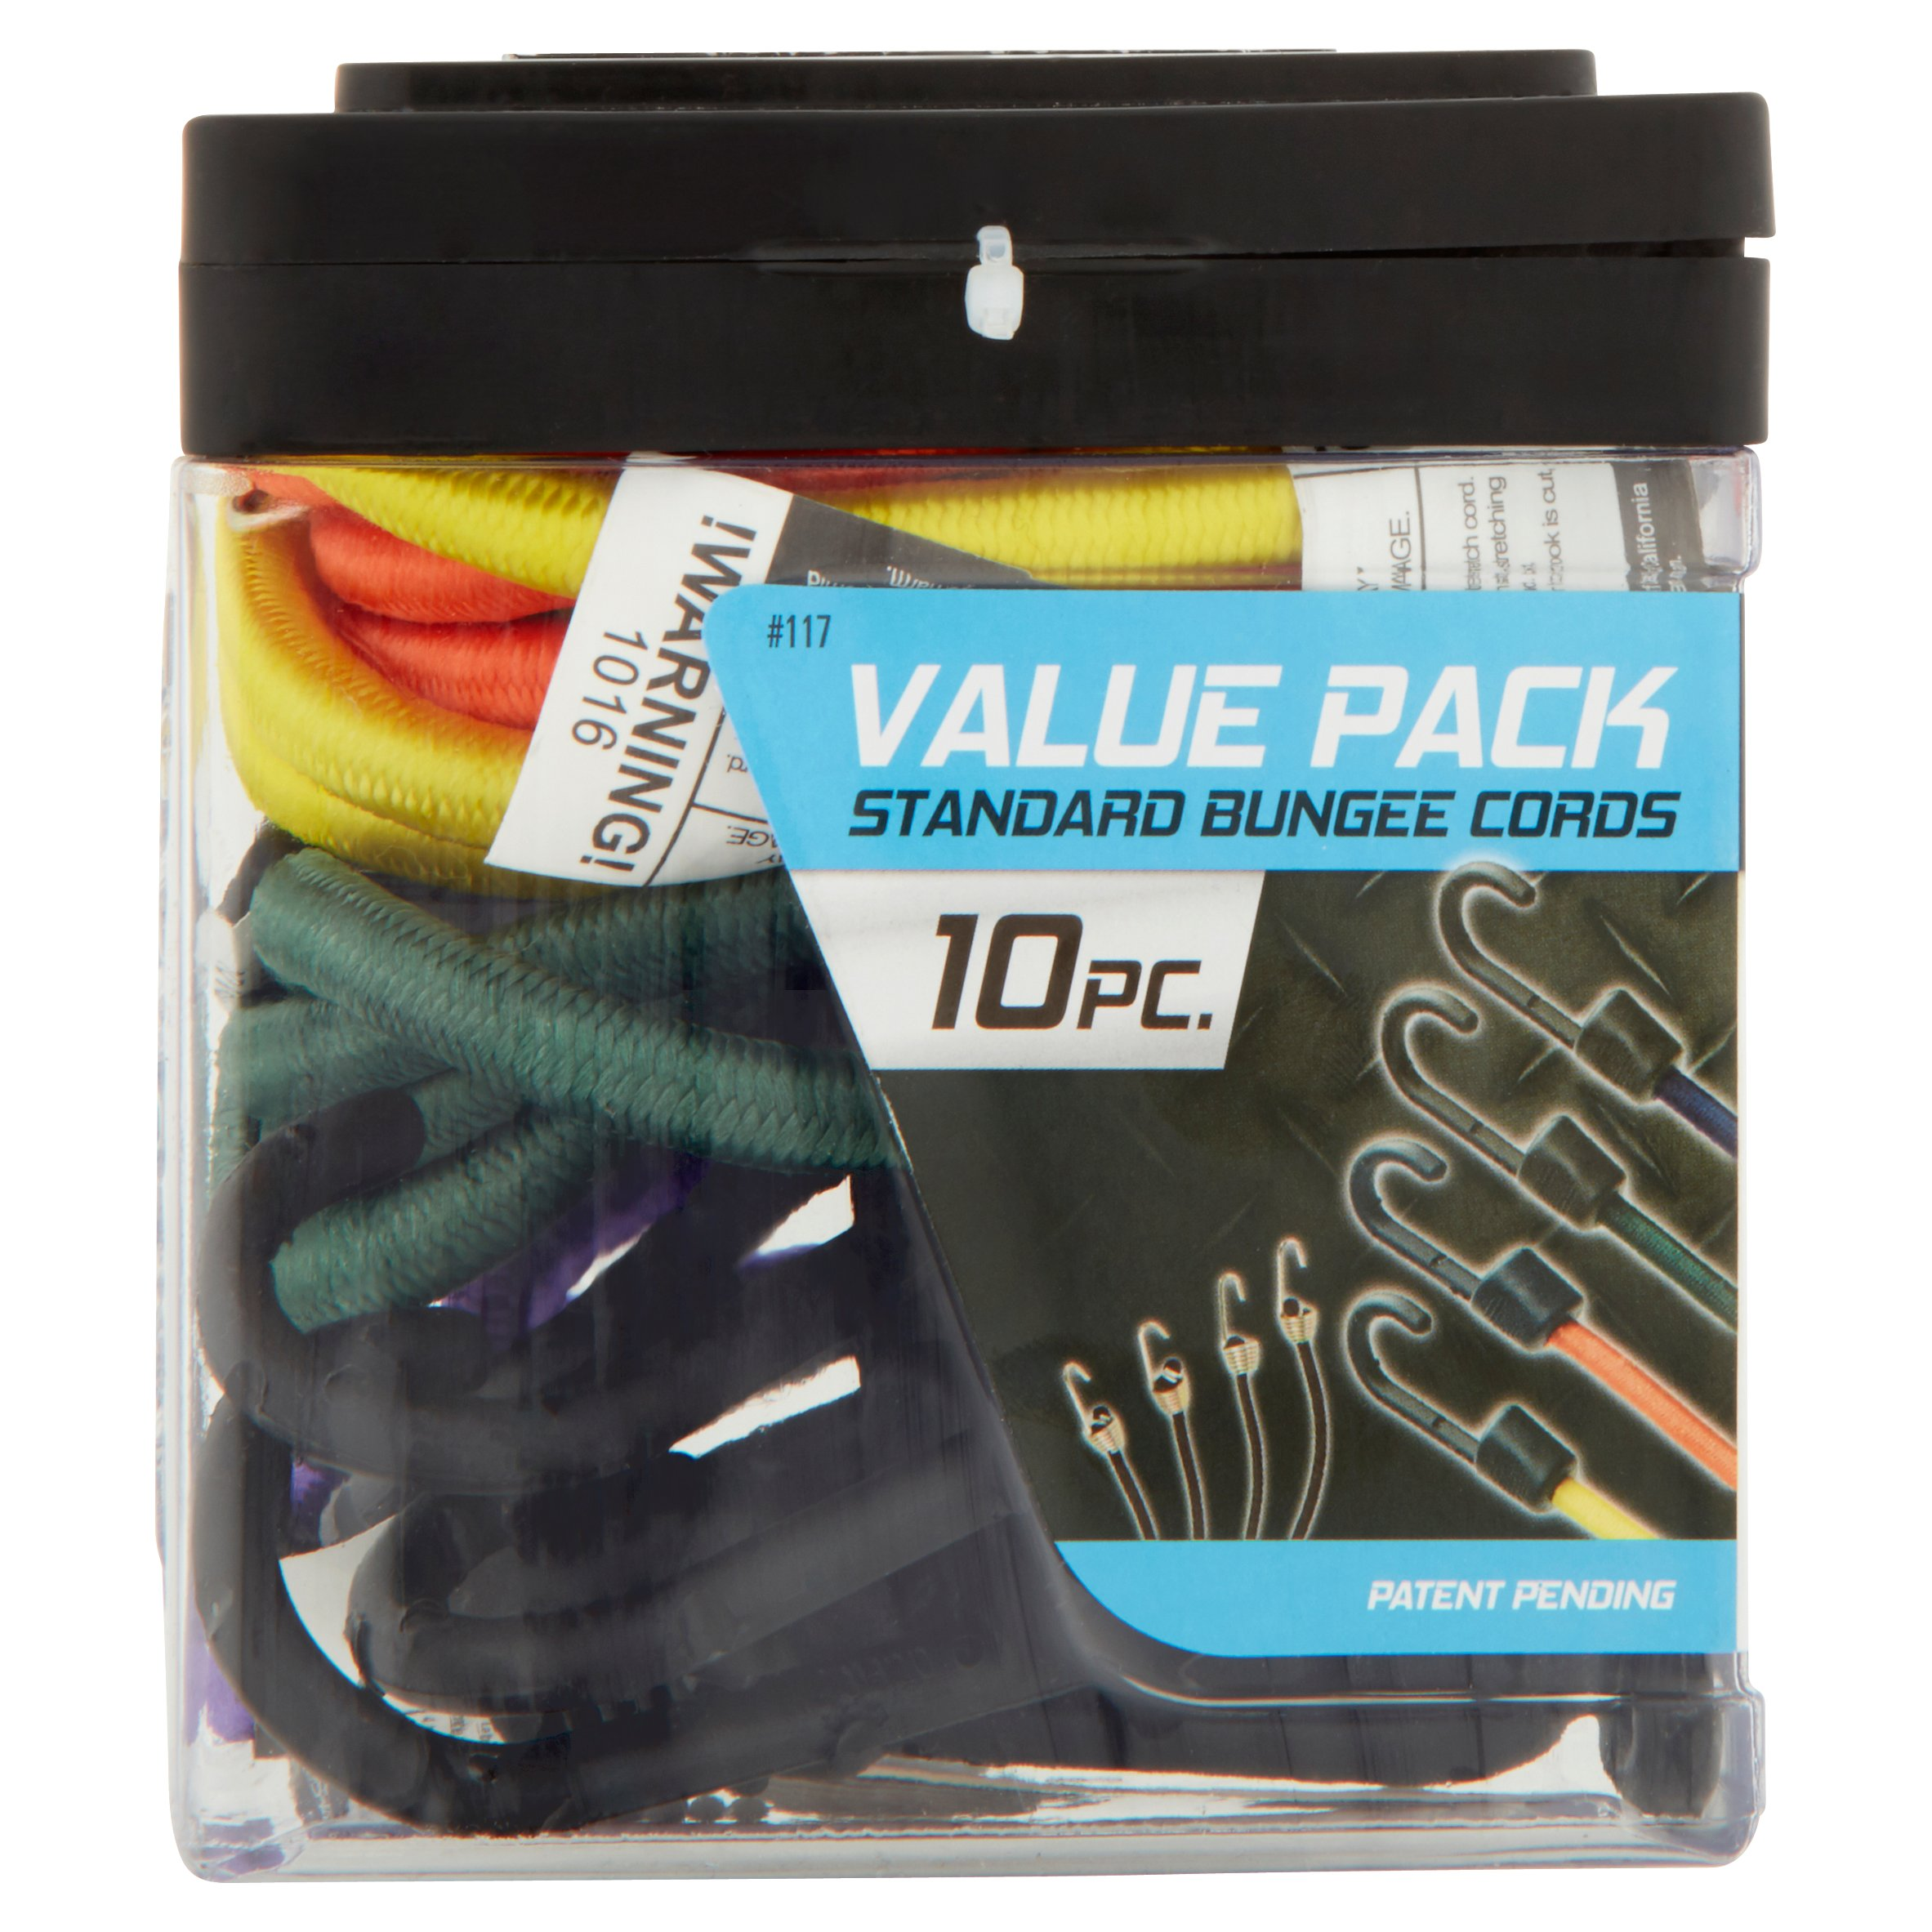 SmartStraps Standard Bungee Cords Value Pack, 10 count